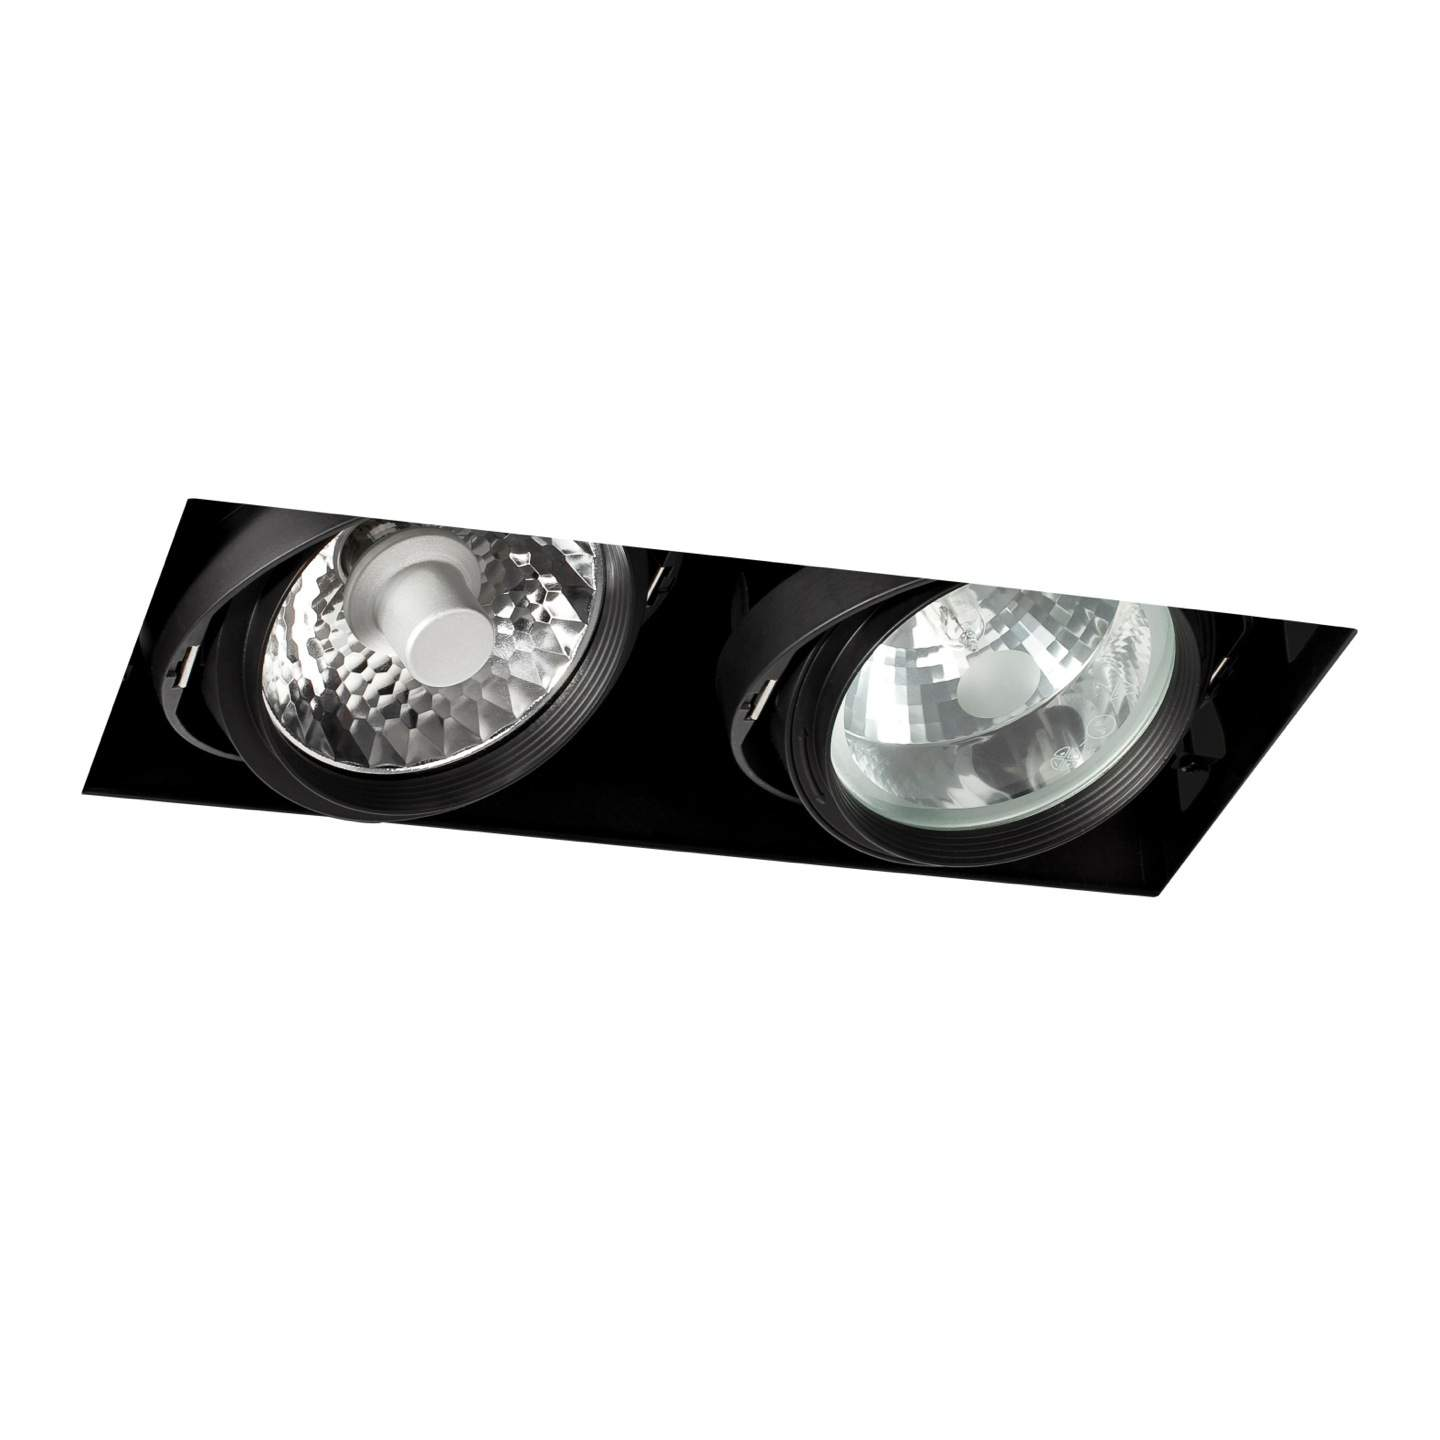 Morris Recessed Ceiling (body without PortaLámpara s) 2xElements without Framework